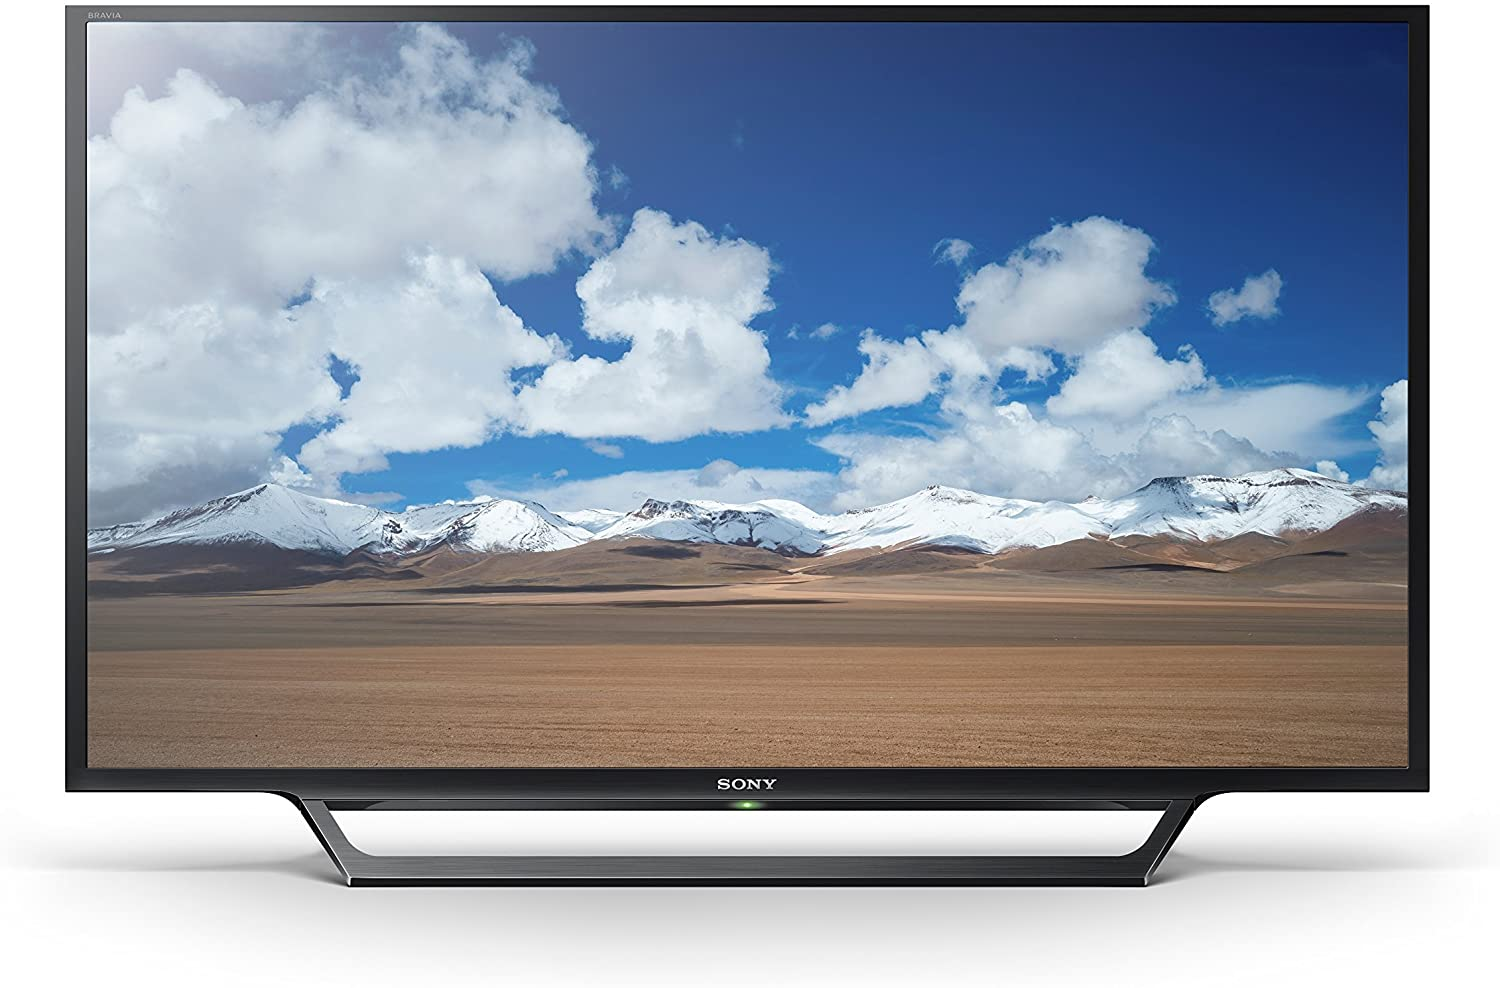 Sony KDL32W600D 720p Smart LED TV, 32-Inch